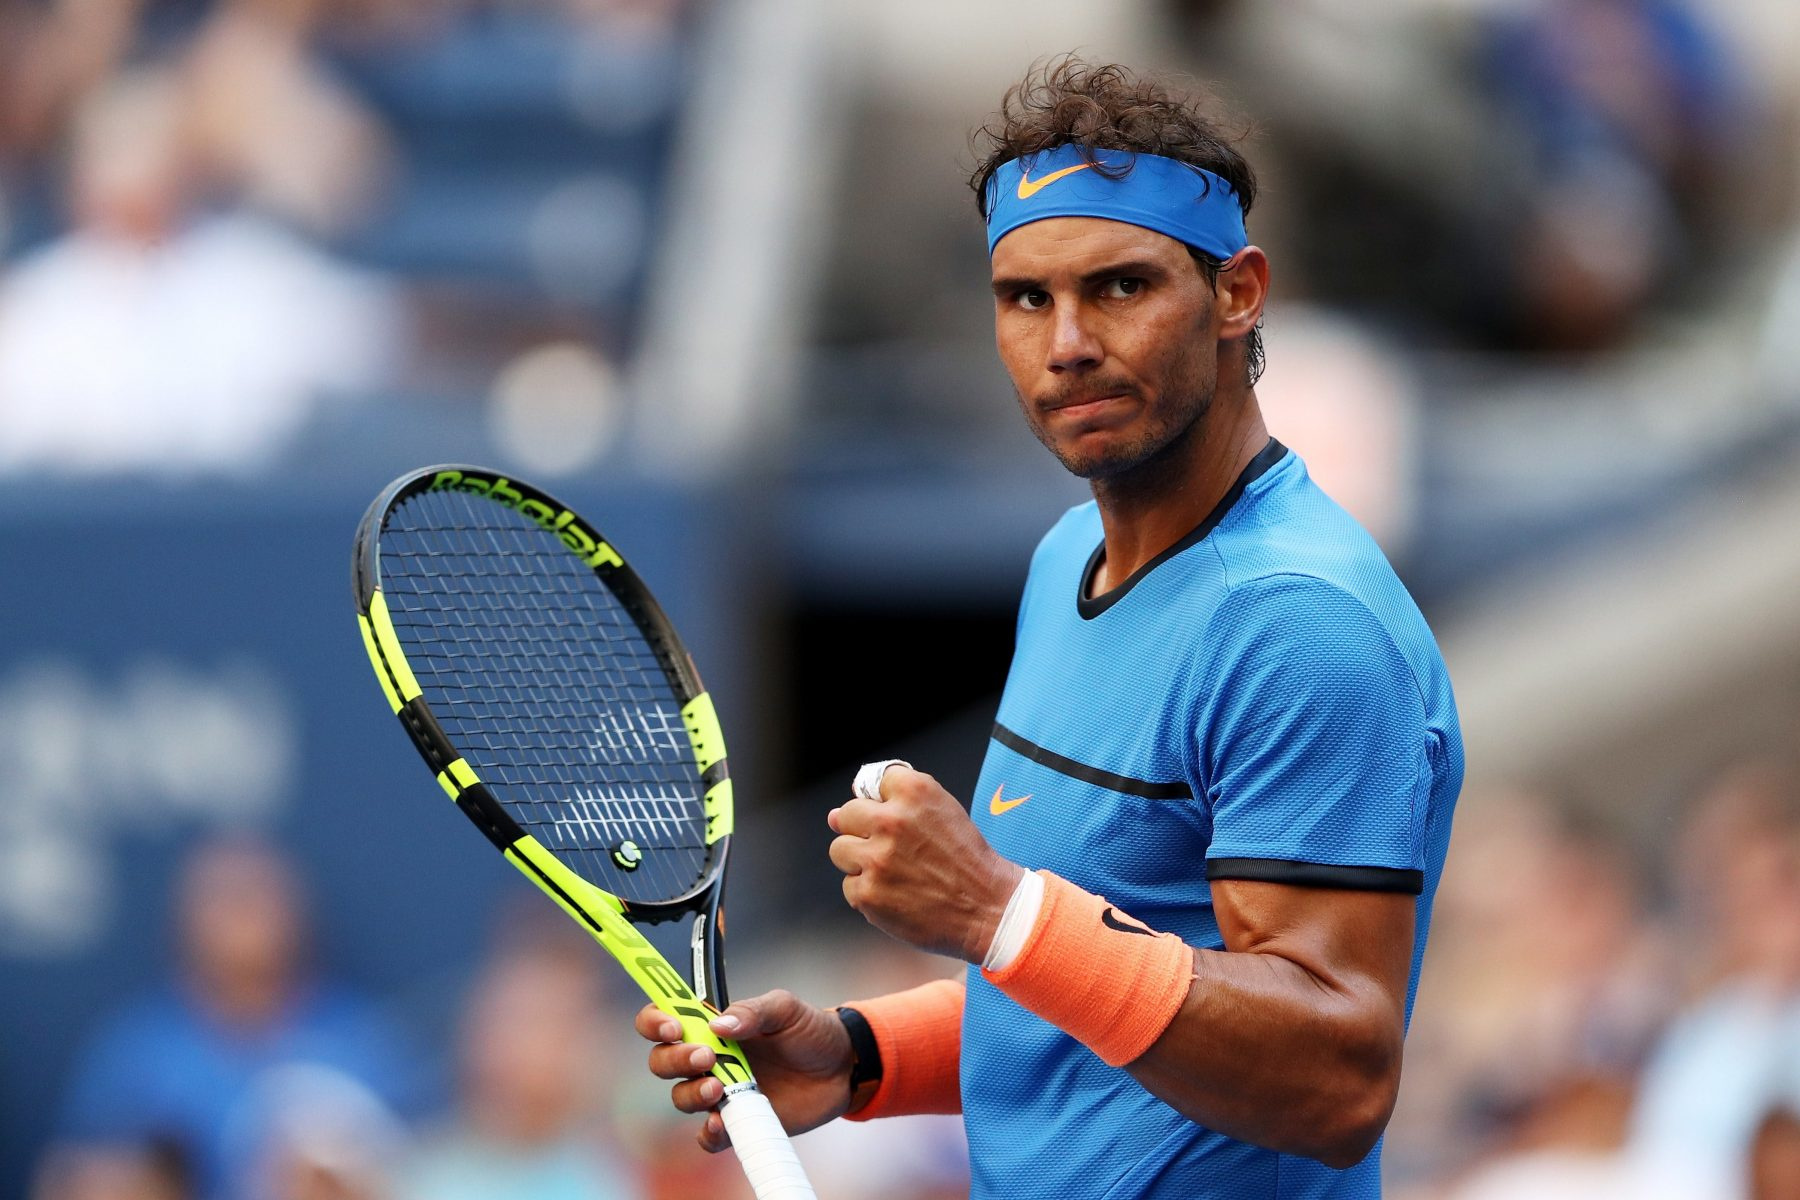 New Rafael Nadal Wallpapers Download High Quality HD Images 1800x1200